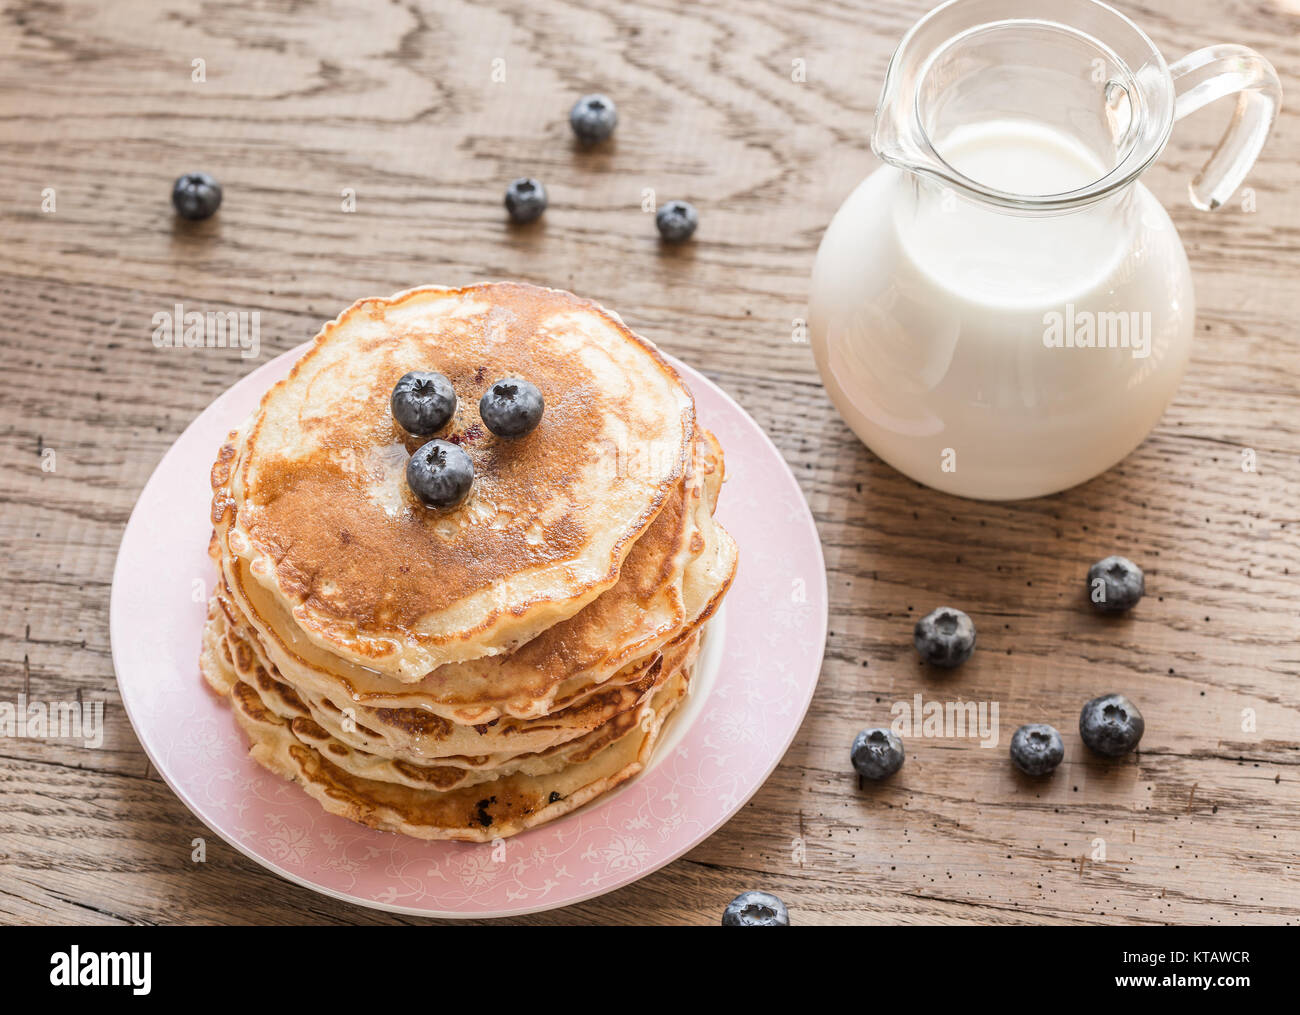 Pancakes with maple syrup and fresh blueberries Stock Photo